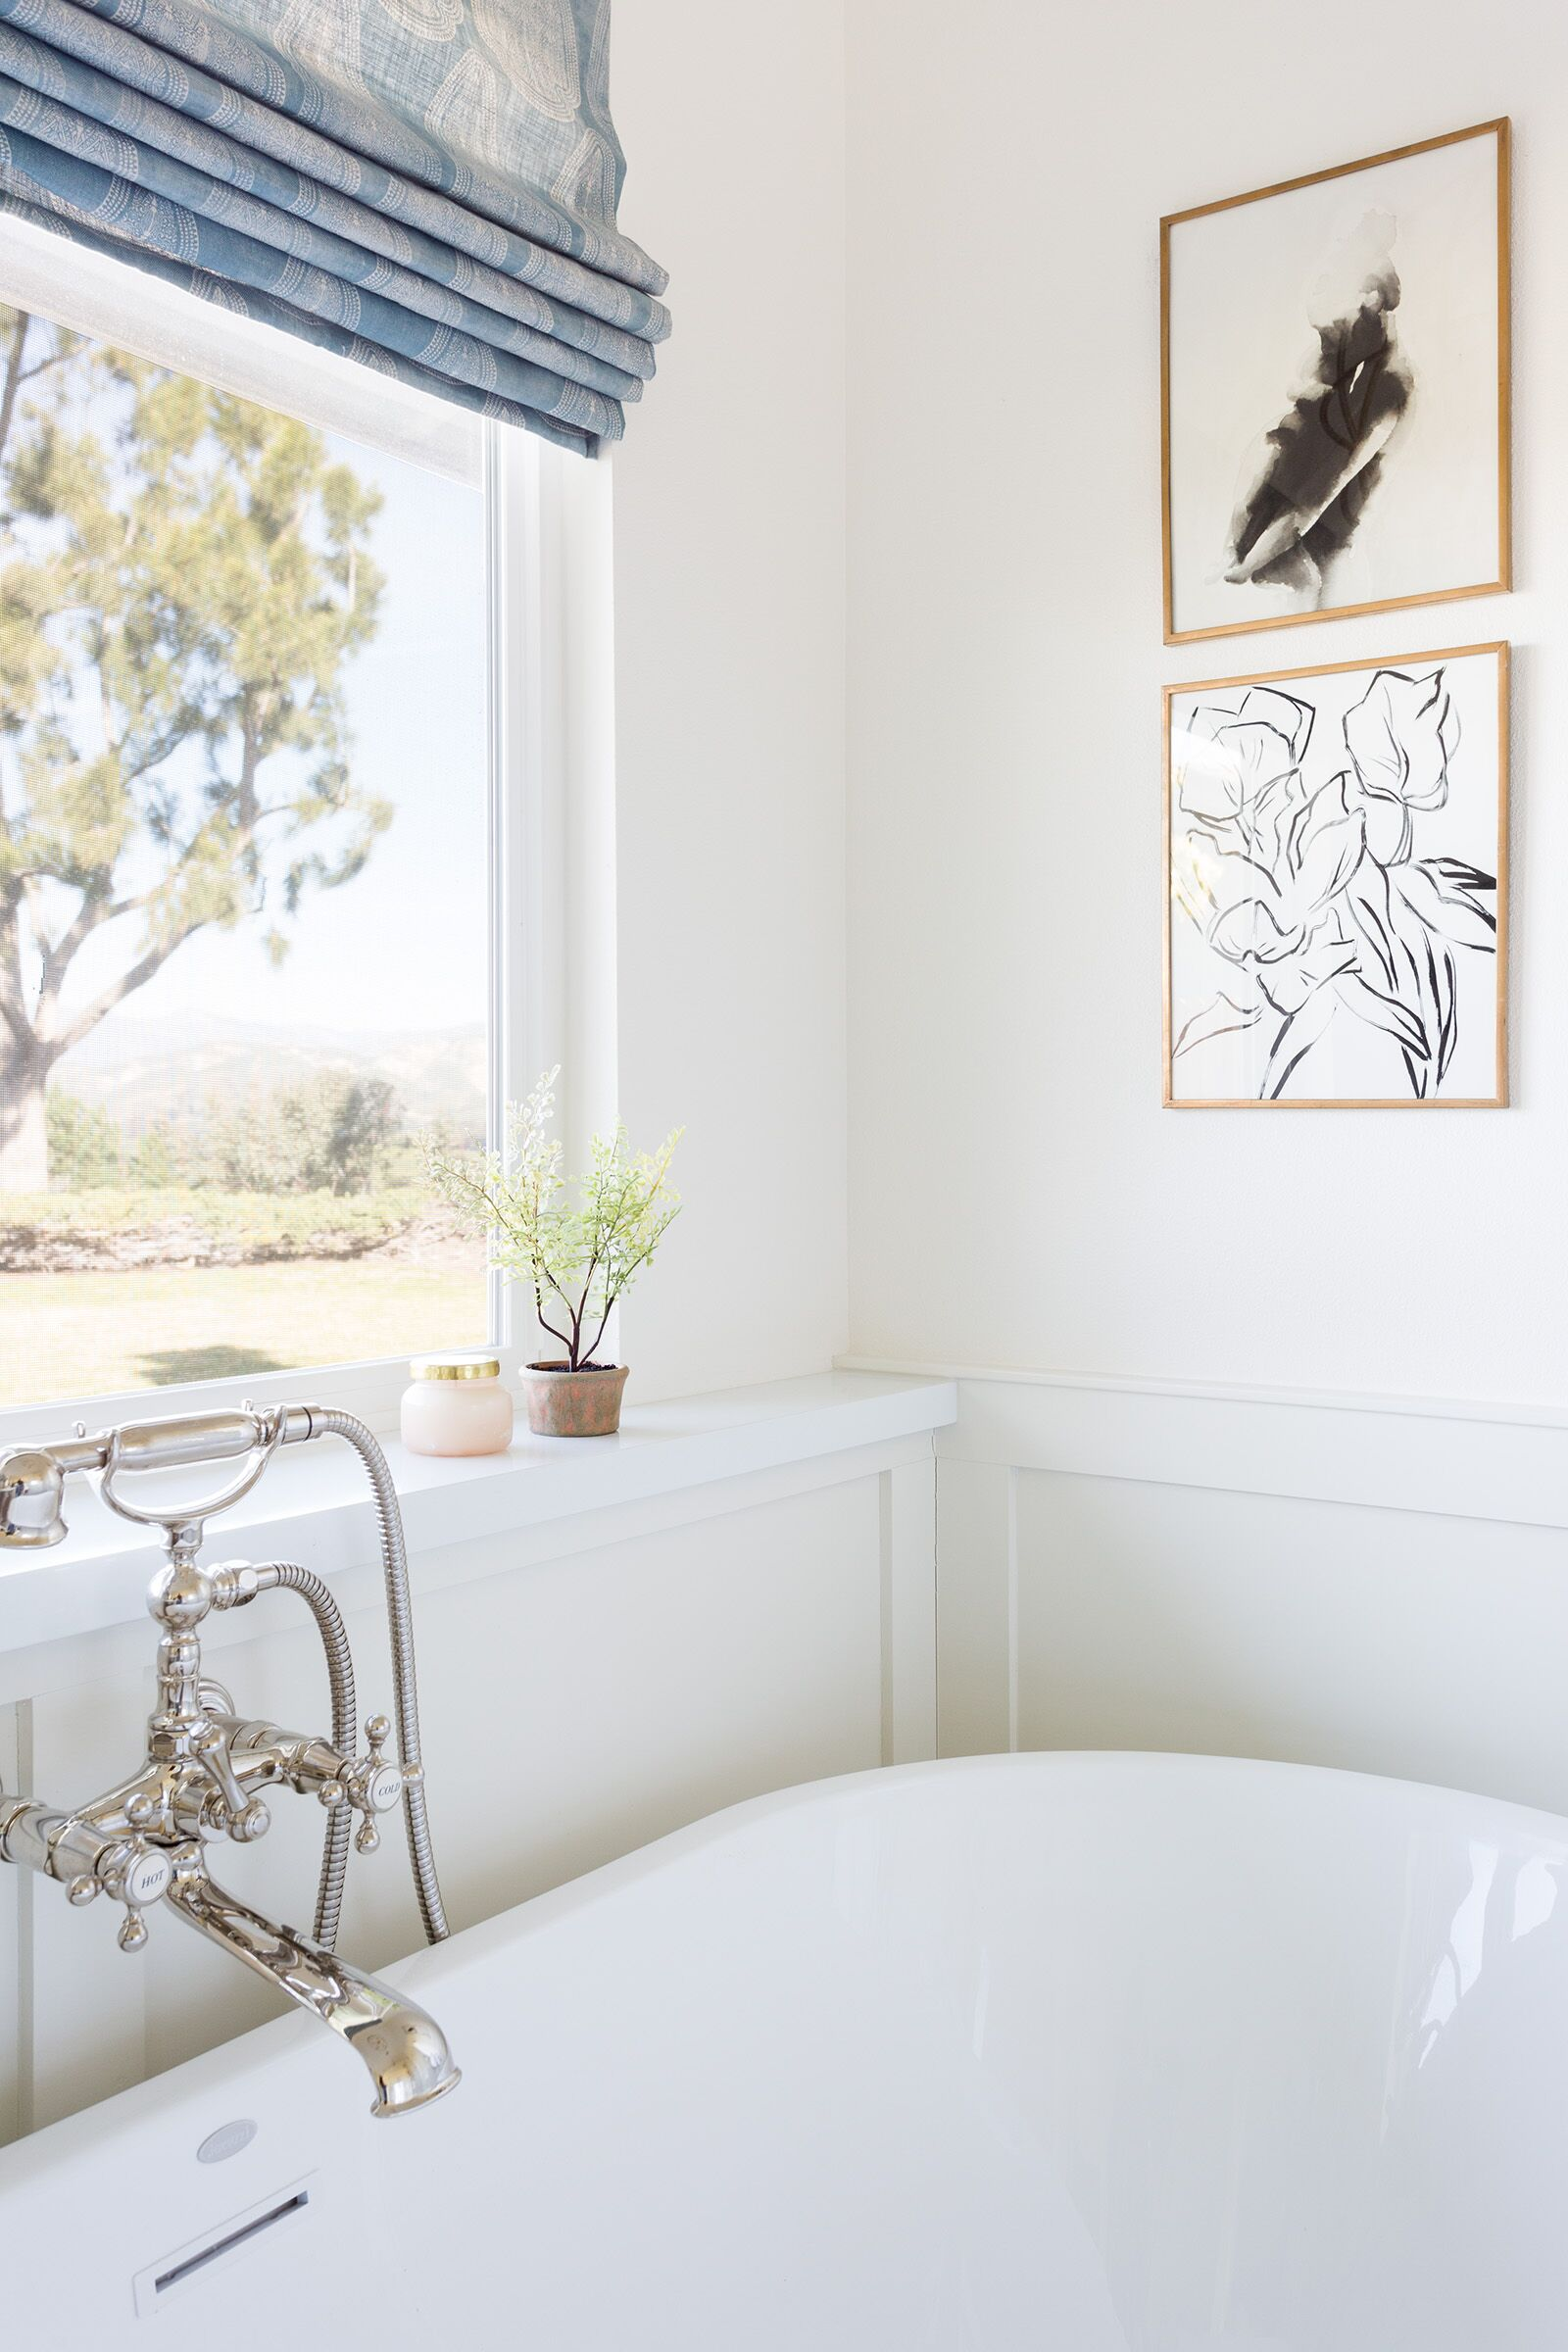 Master Bathroom: Camarillo Ranch Project | Lindsey Brooke Design - Los Angeles Interior Designer.jpg